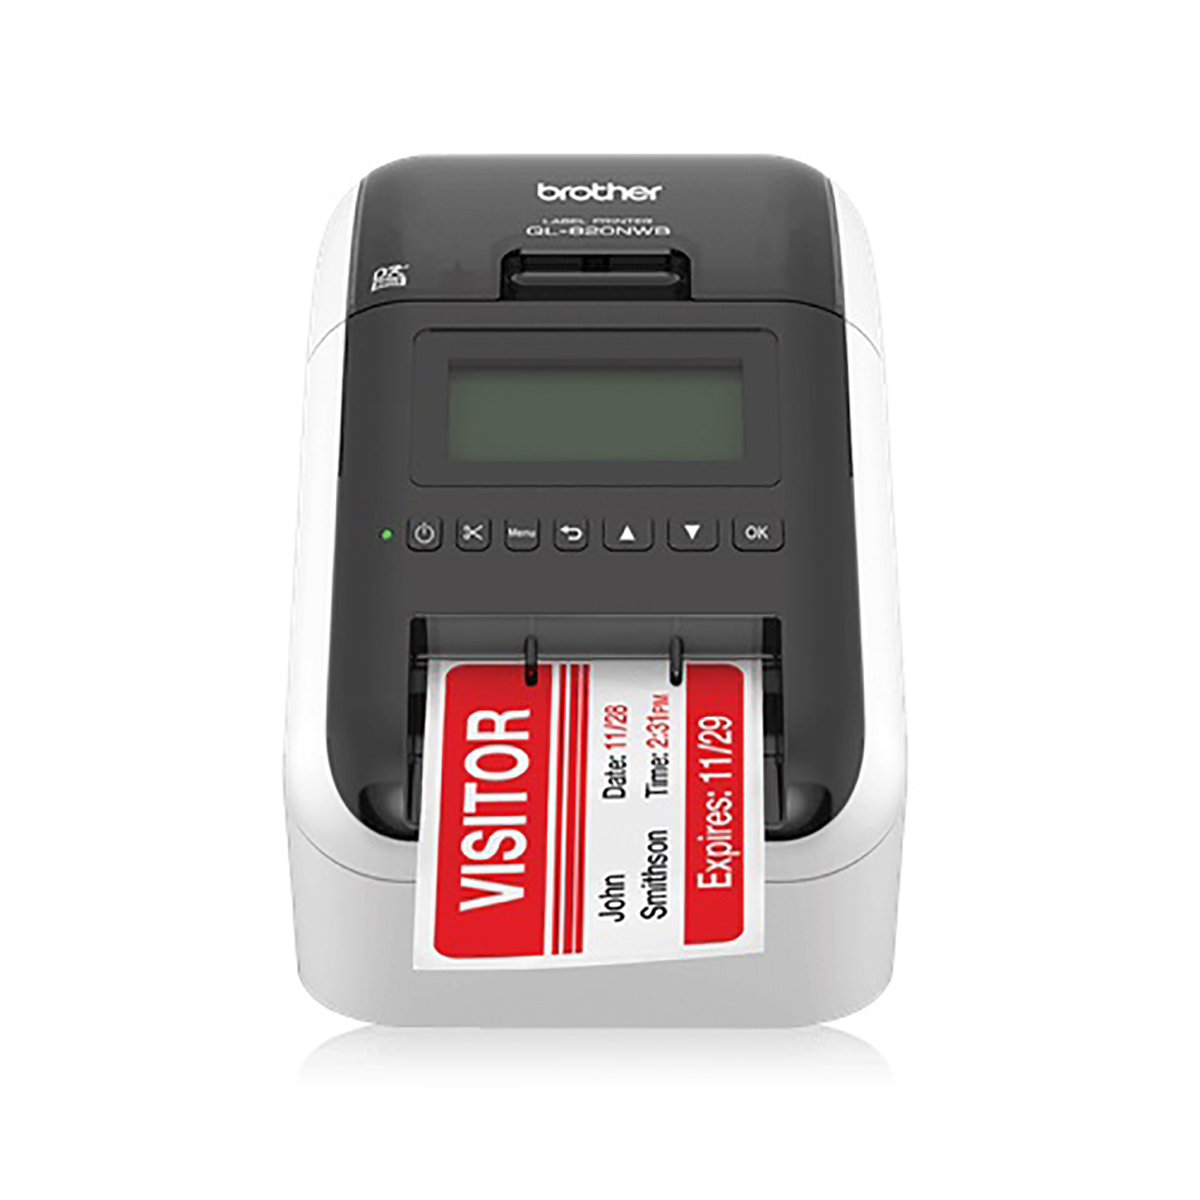 Brother QL-820NWB Wireless Label Printer For Business